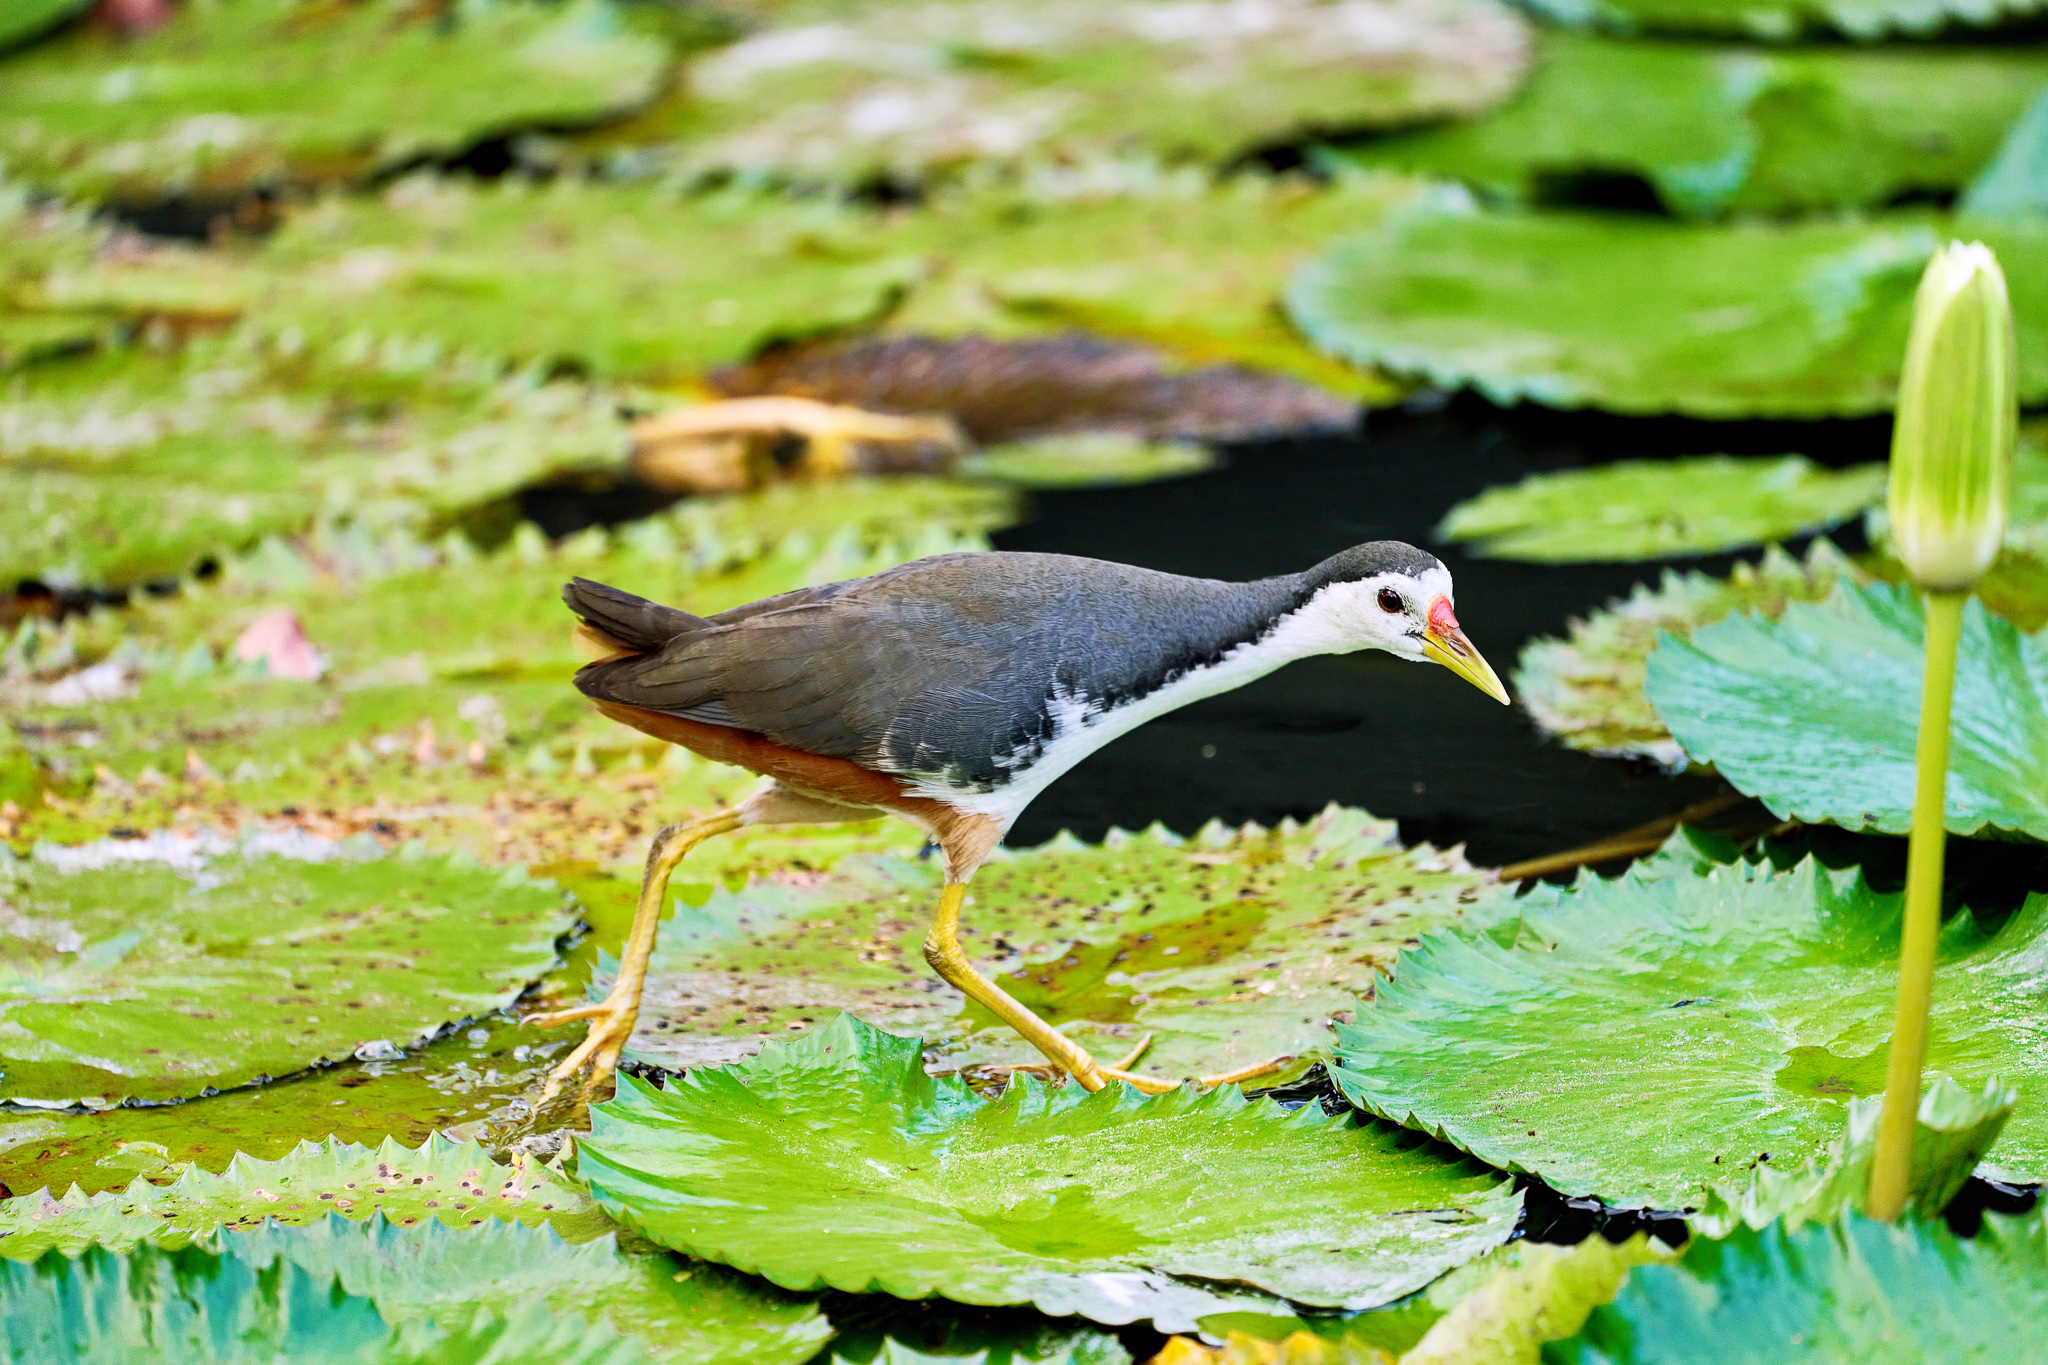 White-breasted Waterhen on the look out for it's prey amongst the lotus leaves in a lake, Singapore Botanic Gardens, Singapore